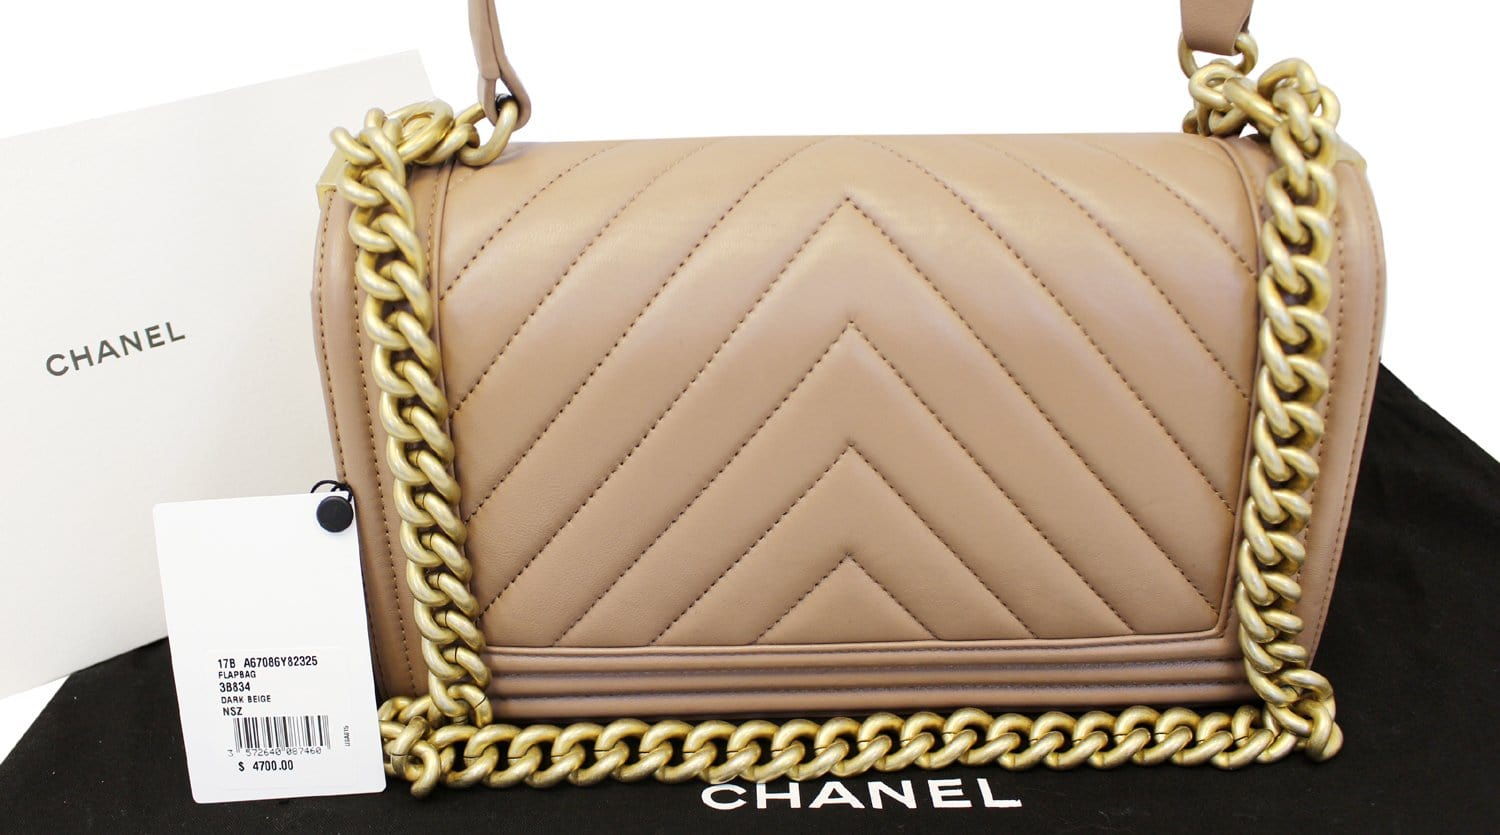 7f5eb9163c1f CHANEL Calfskin Chevron Quilted Dark Beige Medium Boy Flap Bag